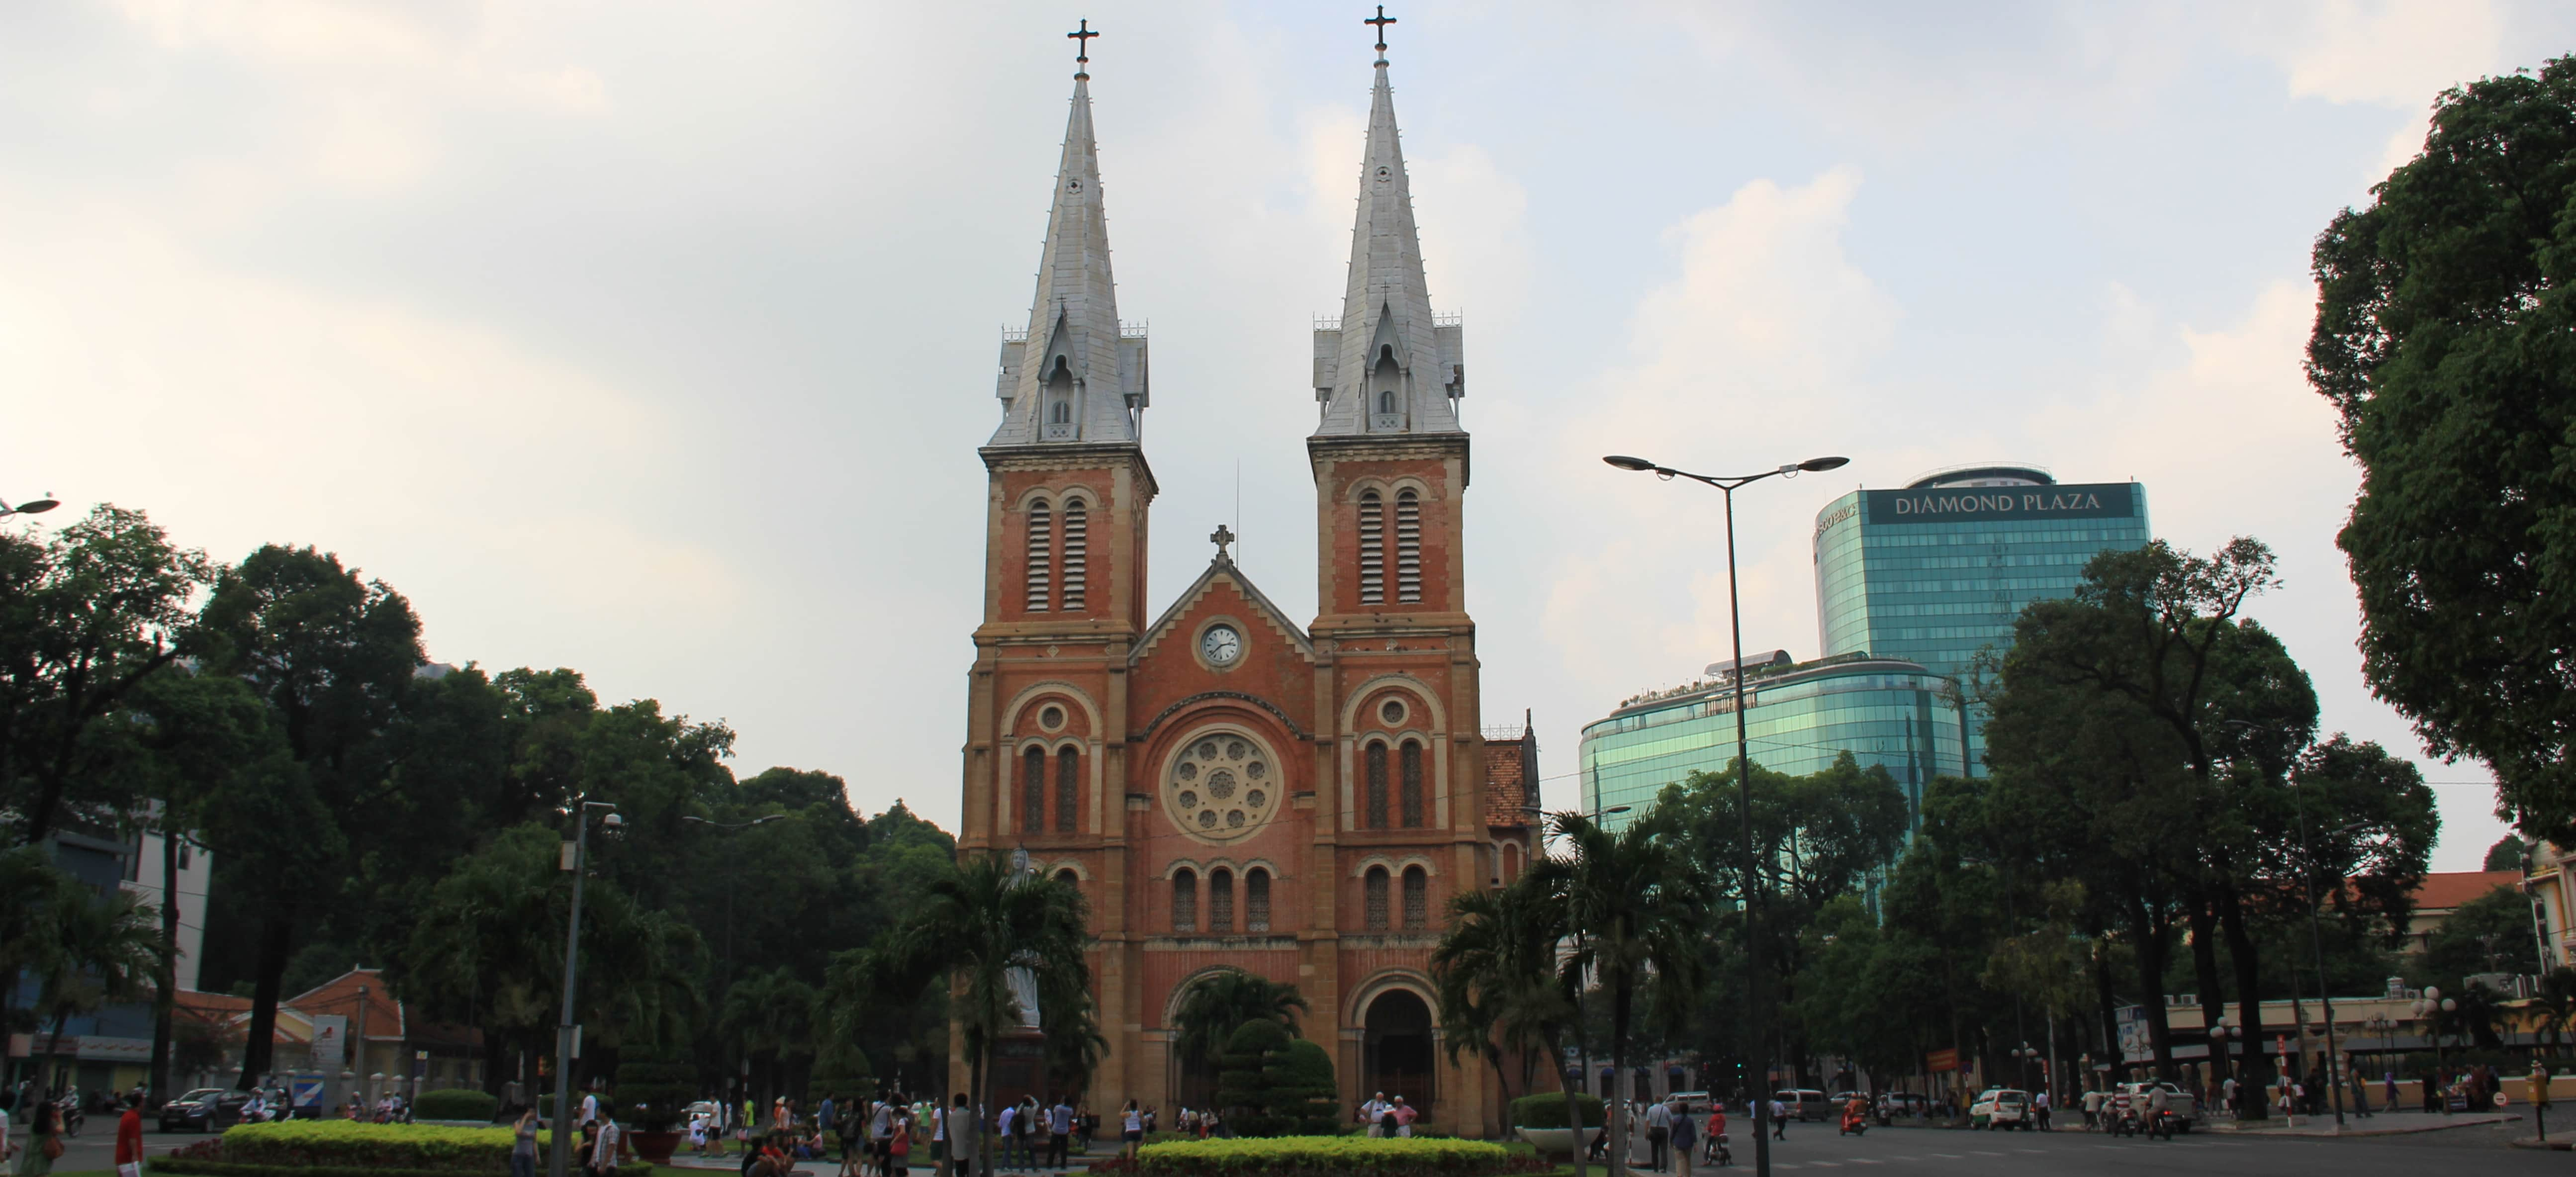 Ho Chi Minh City - Notre Dame Cathedrale